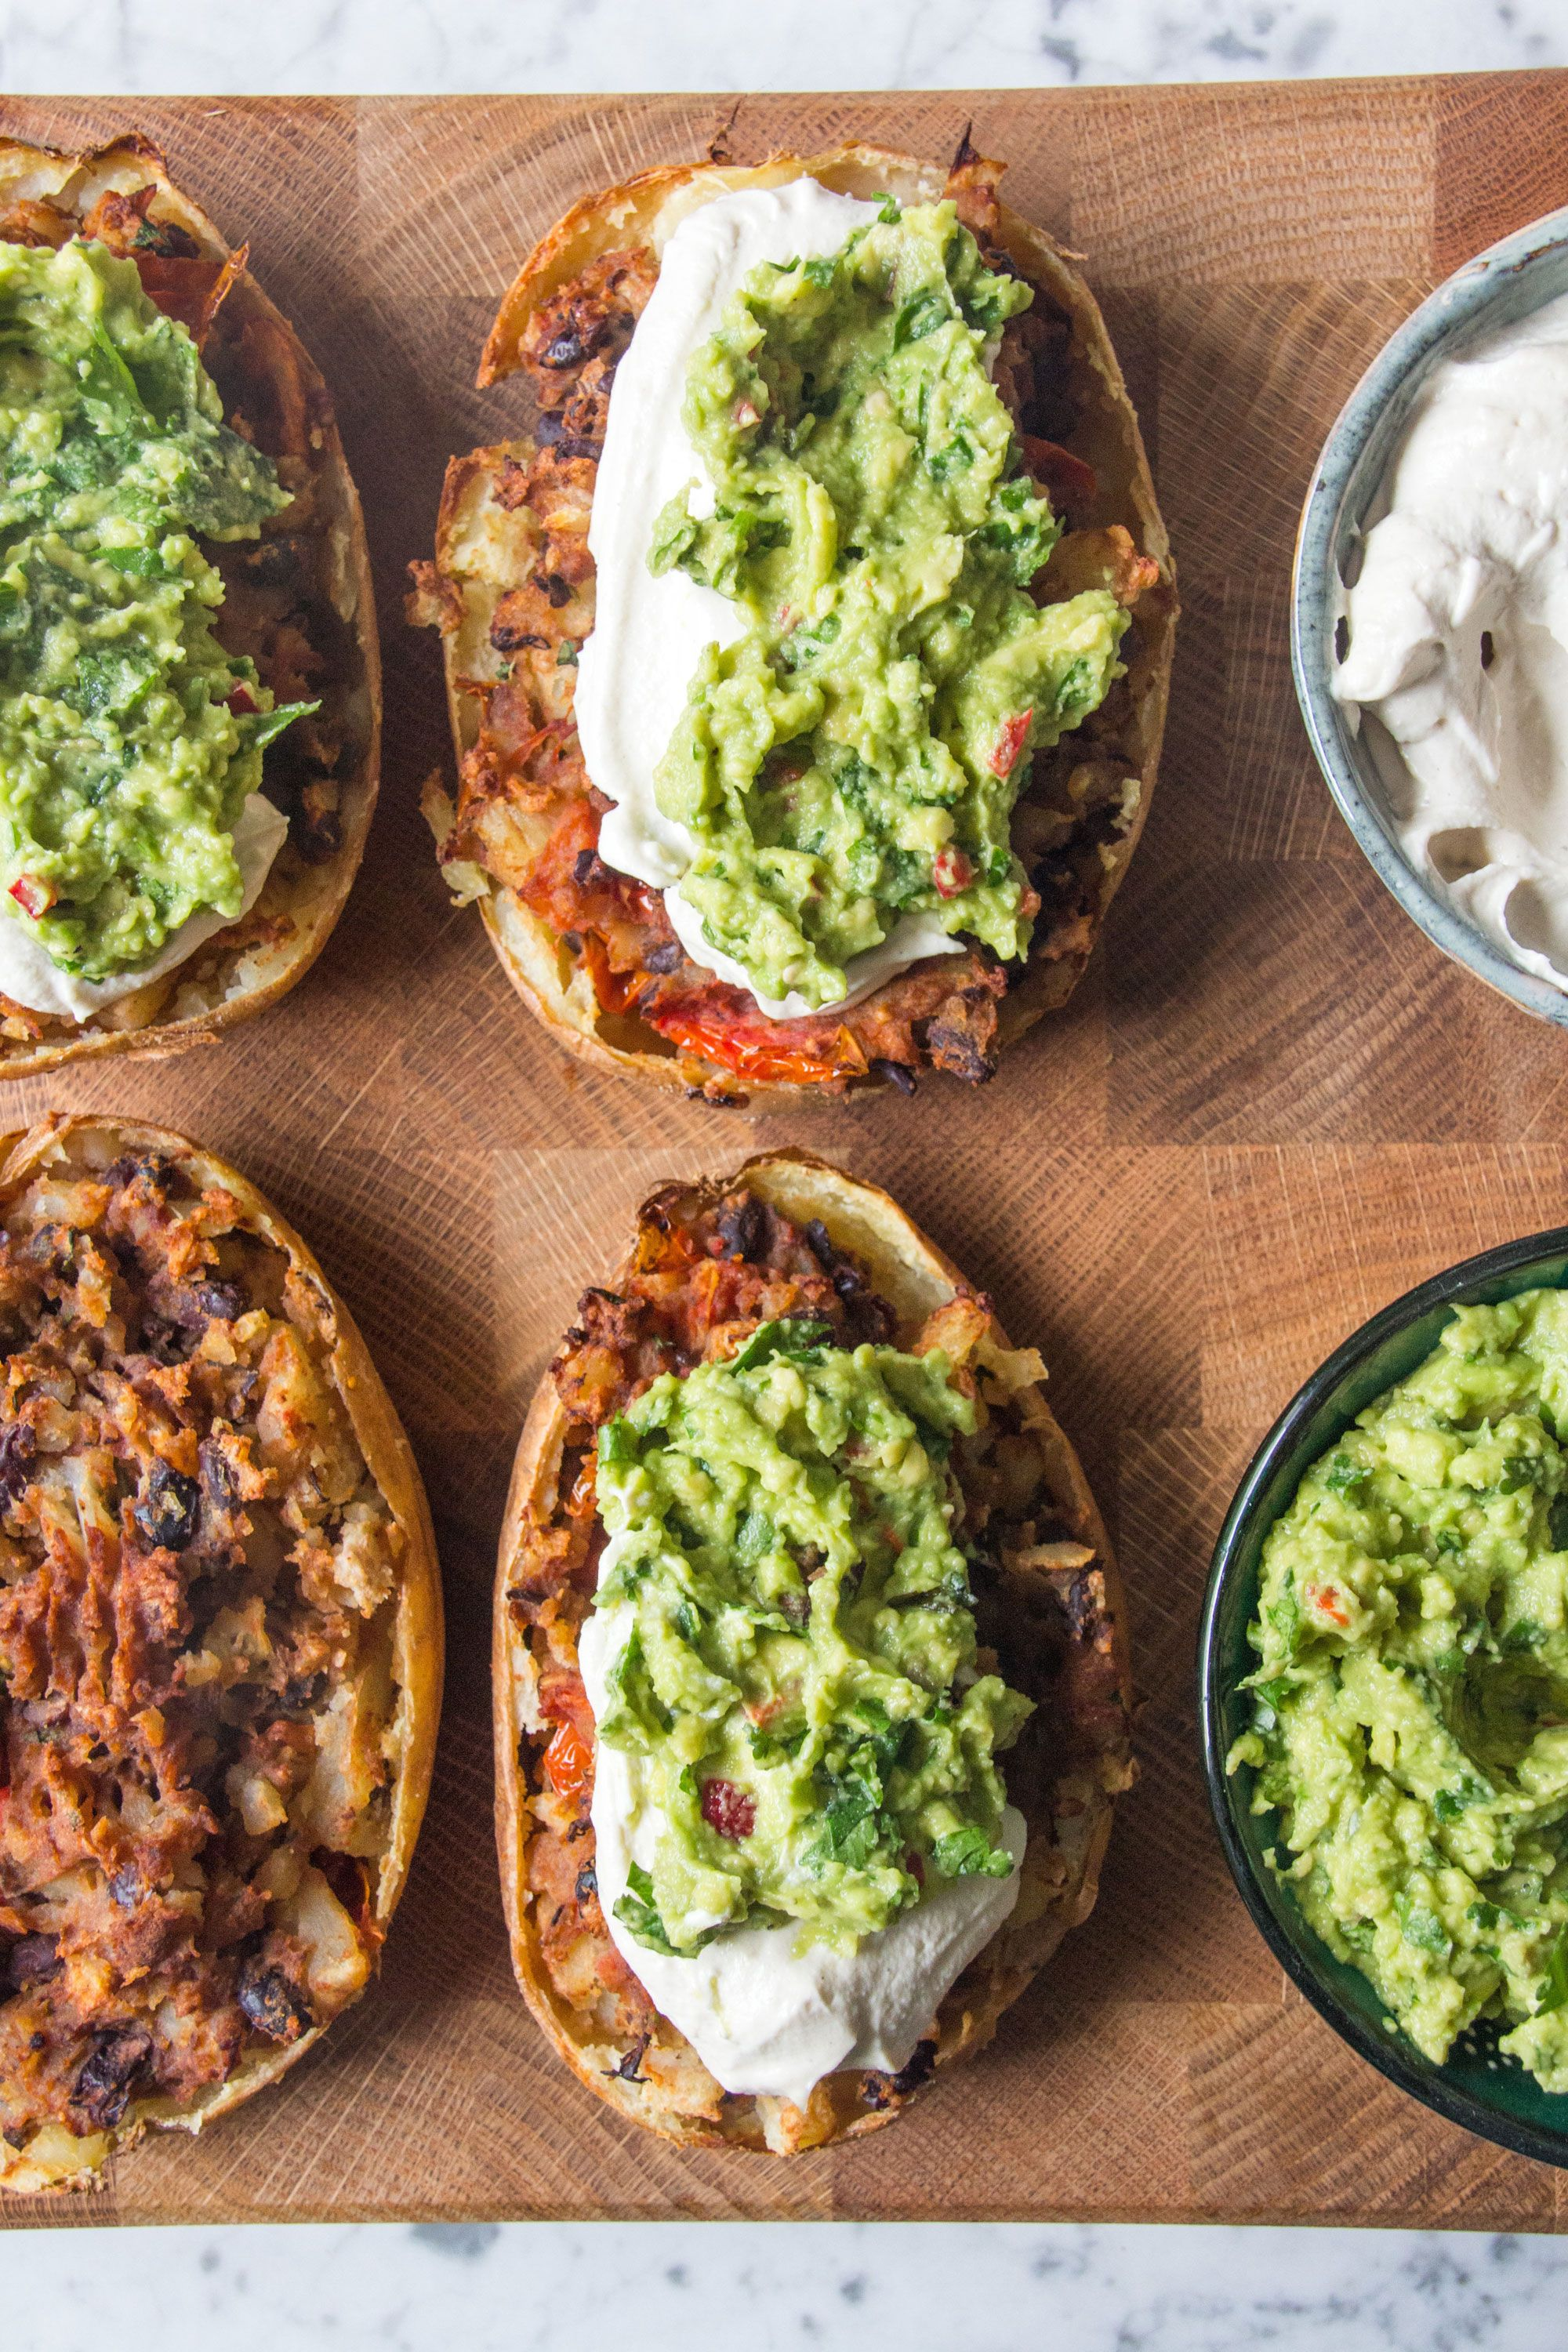 Loaded Mexican Style Potato Skins Healthy Vegetarian Lunch IdeasVegetarian Sweet RecipesHealthy